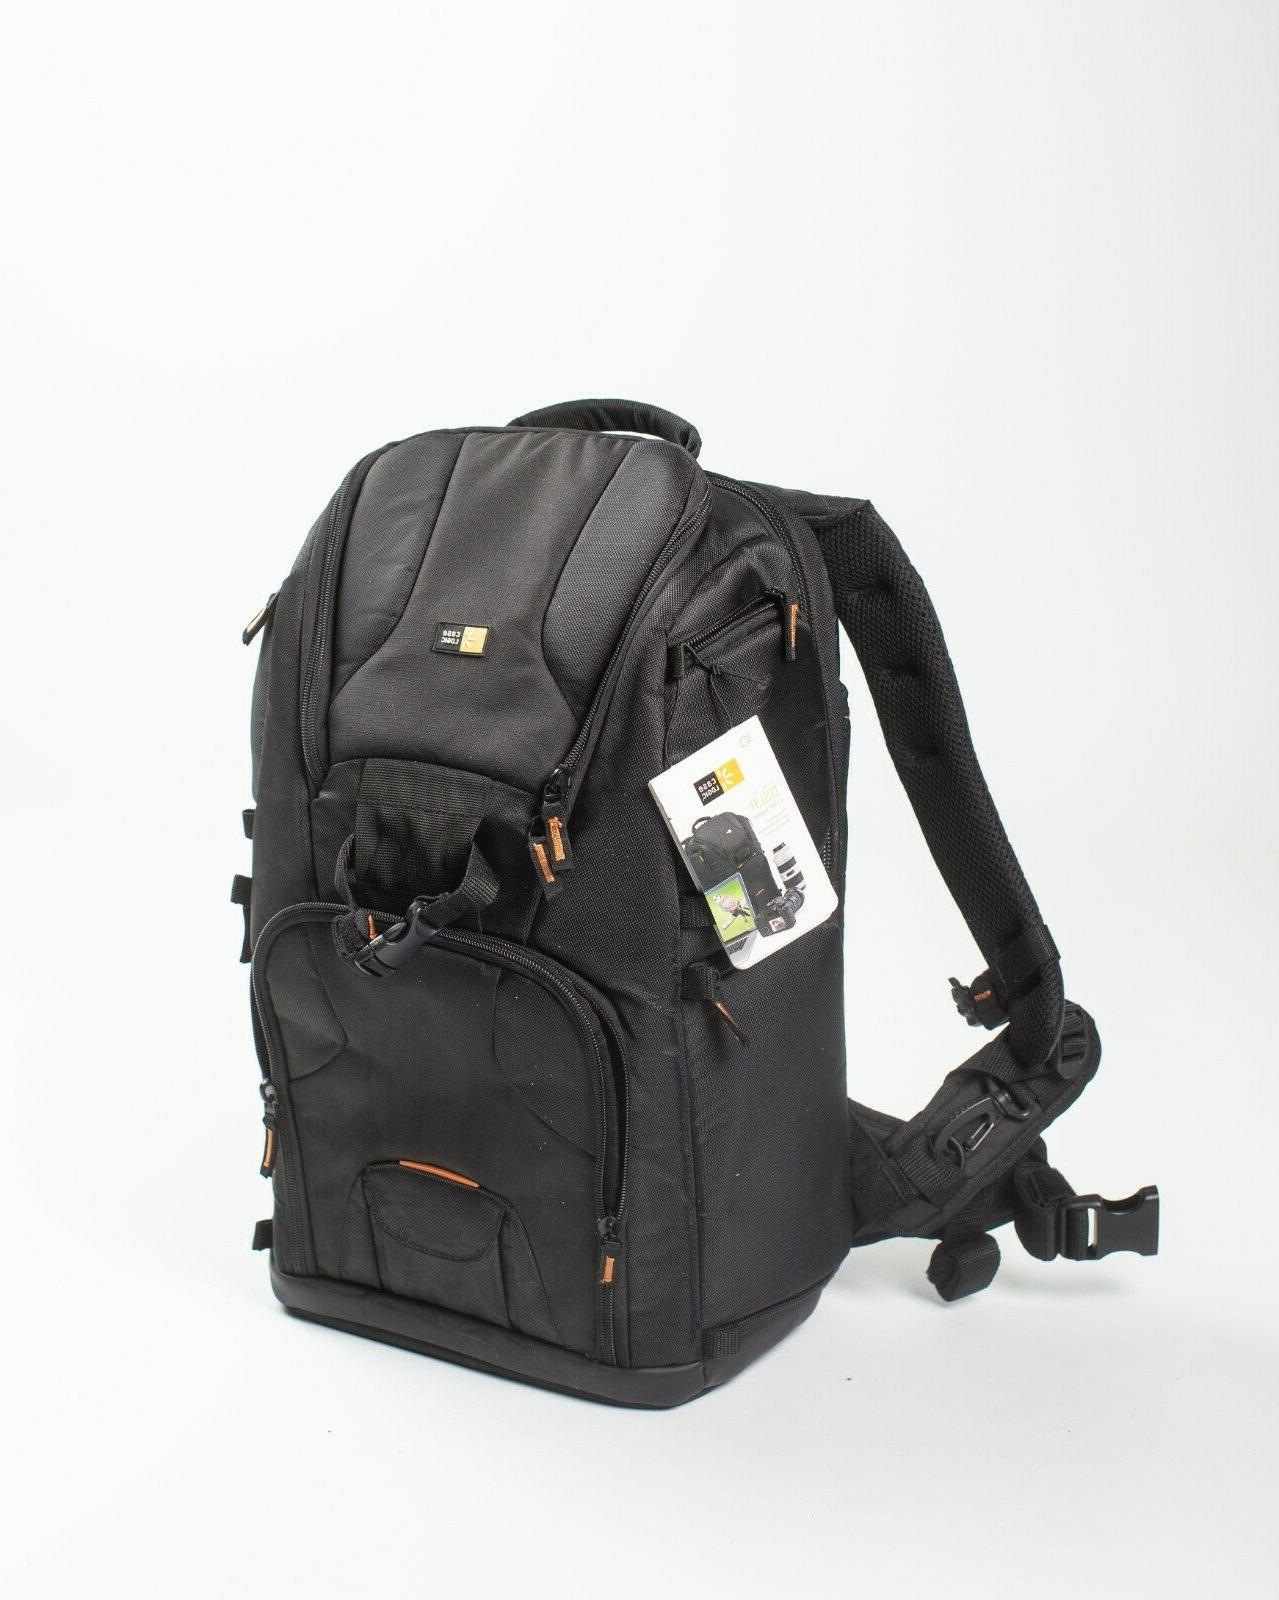 dslr camera backpack can fit 15 laptop